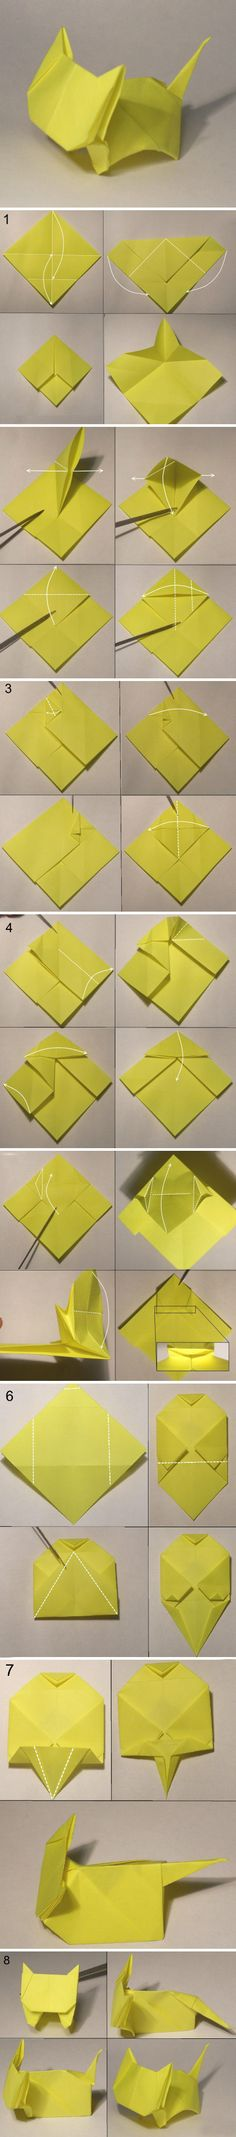 Simple origami kitten paper craft